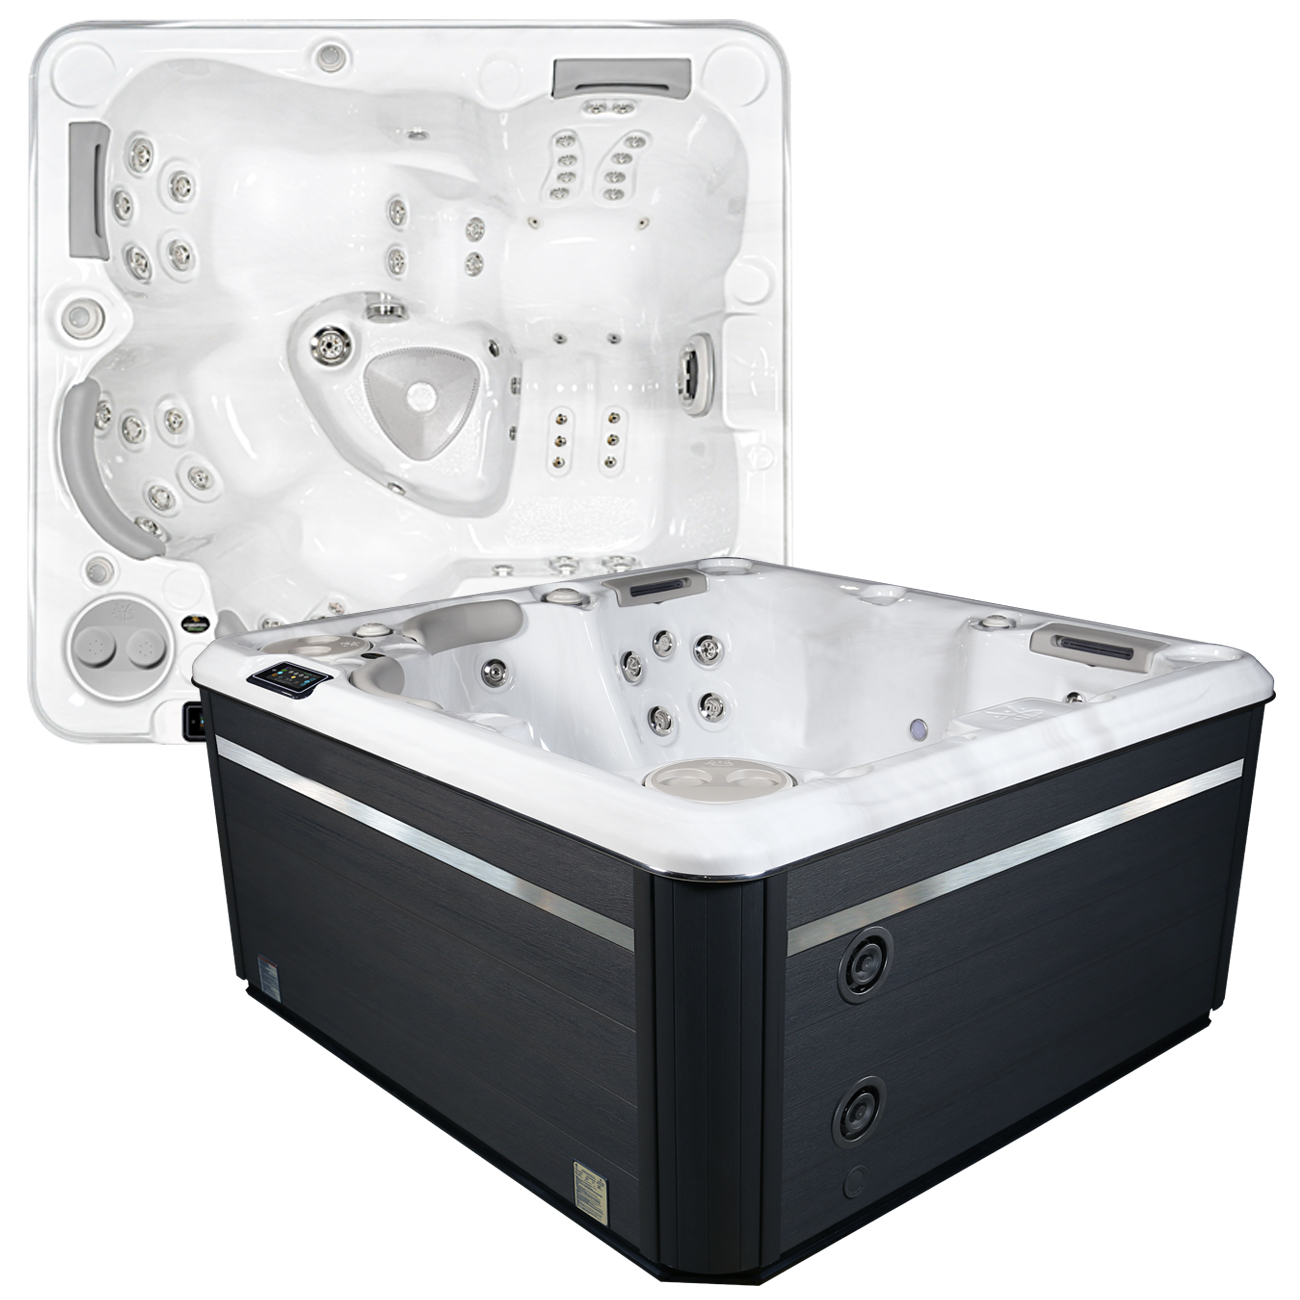 495 Platinum - 4 Person Hot Tub